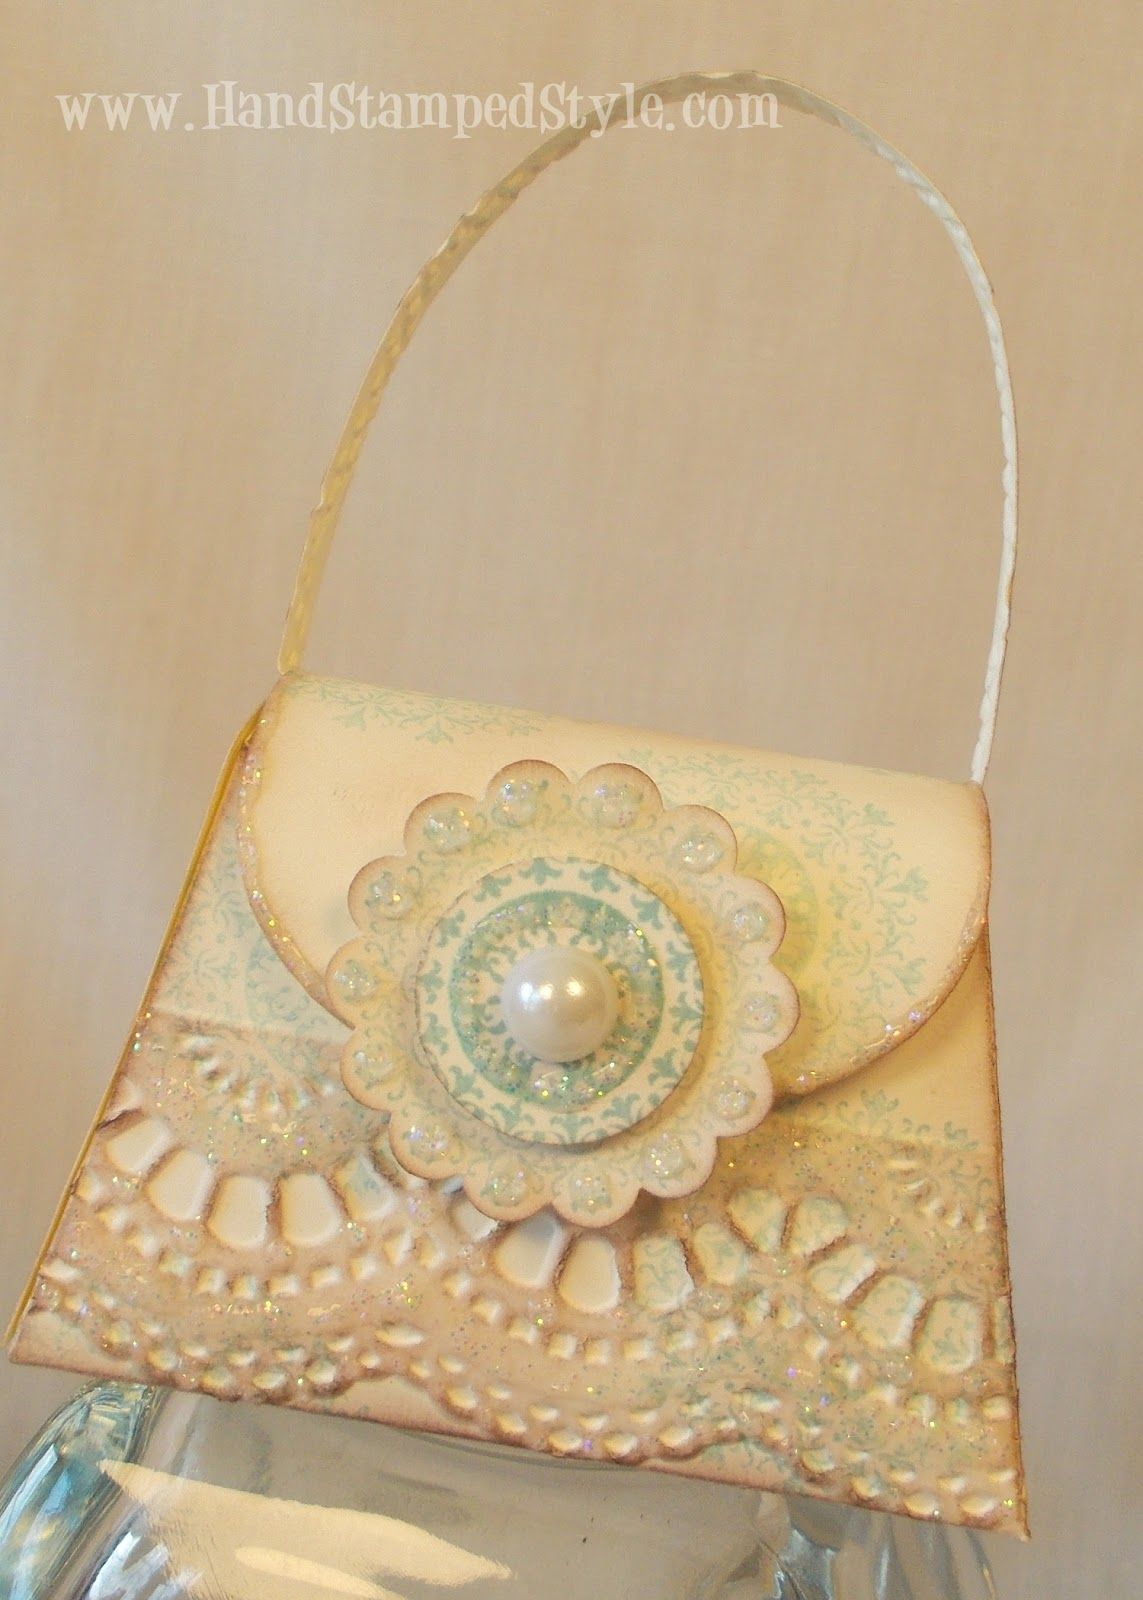 Vintage Petite Purse Die Stampin' Up! - purse die, embossing folder, antique technique - Hand Stamped Style